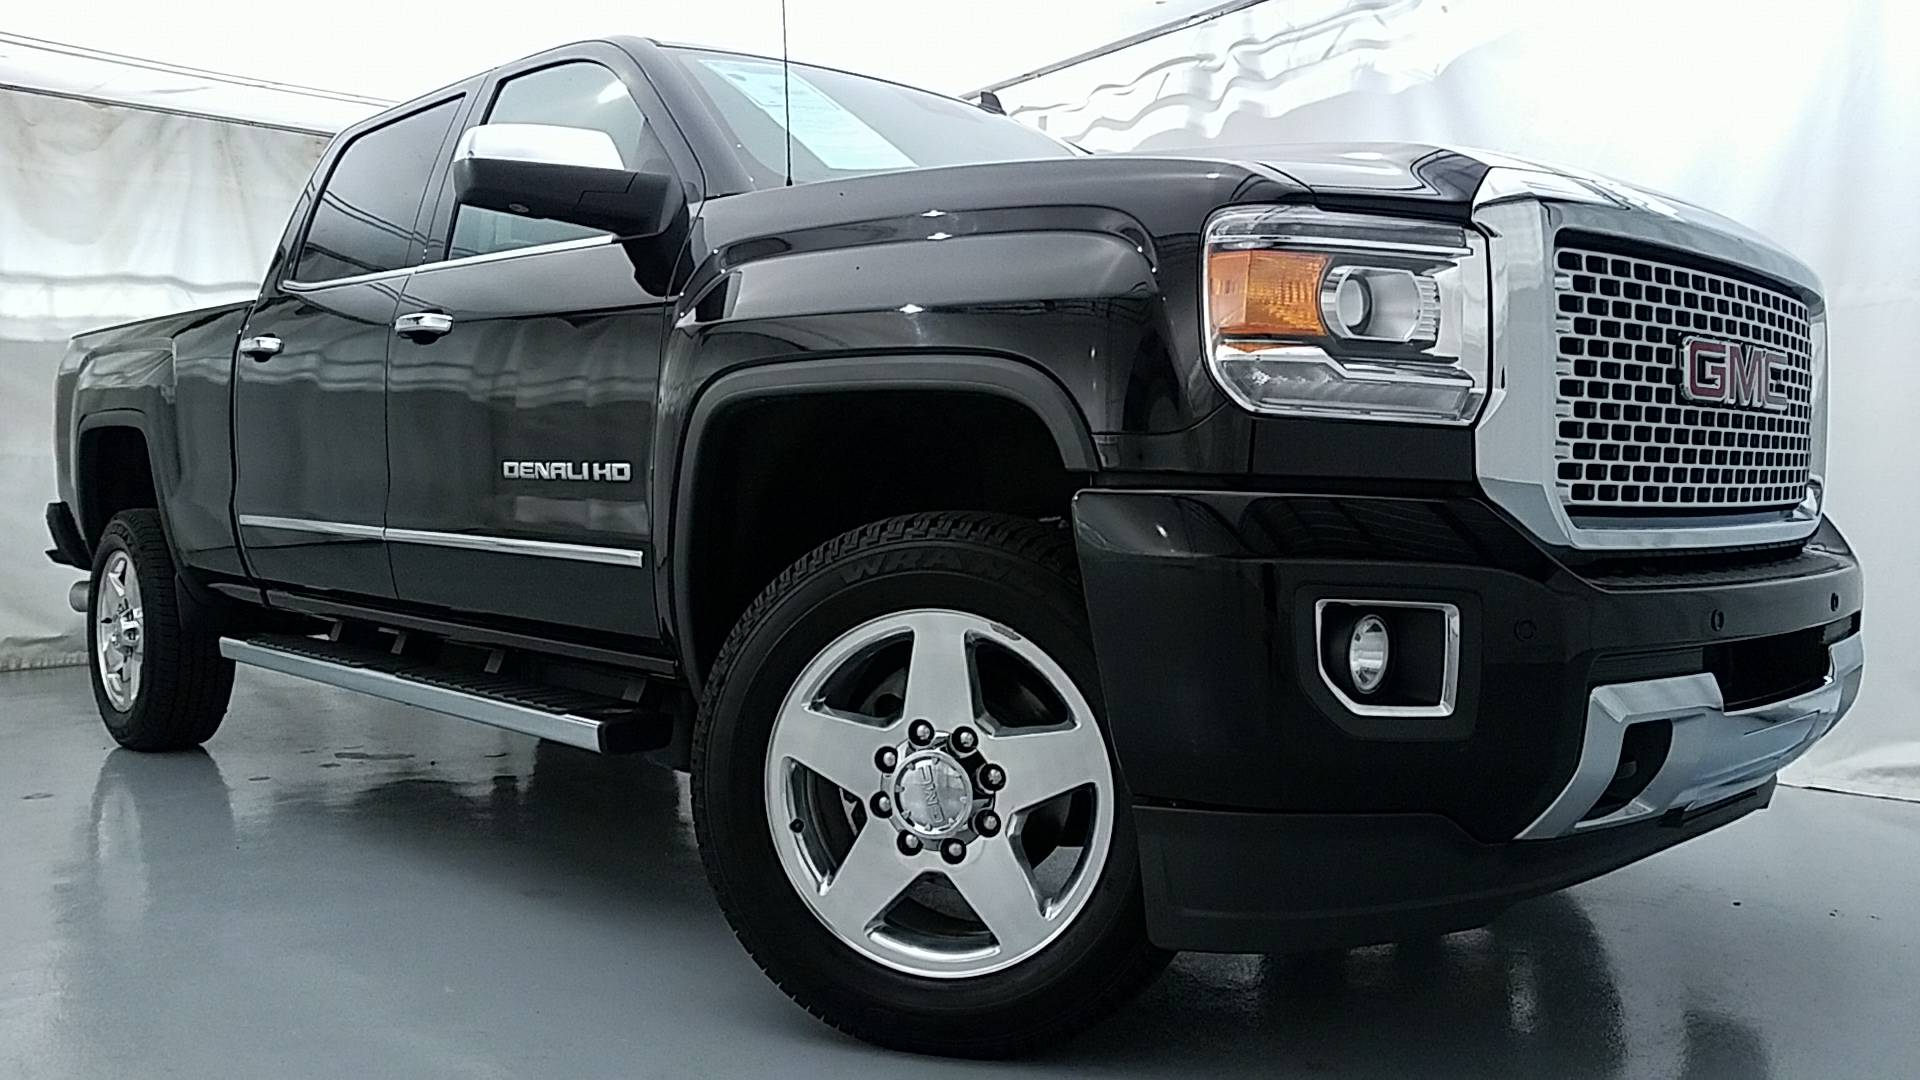 sale gmc yukon version cars pic denali discussion questions for milage vip